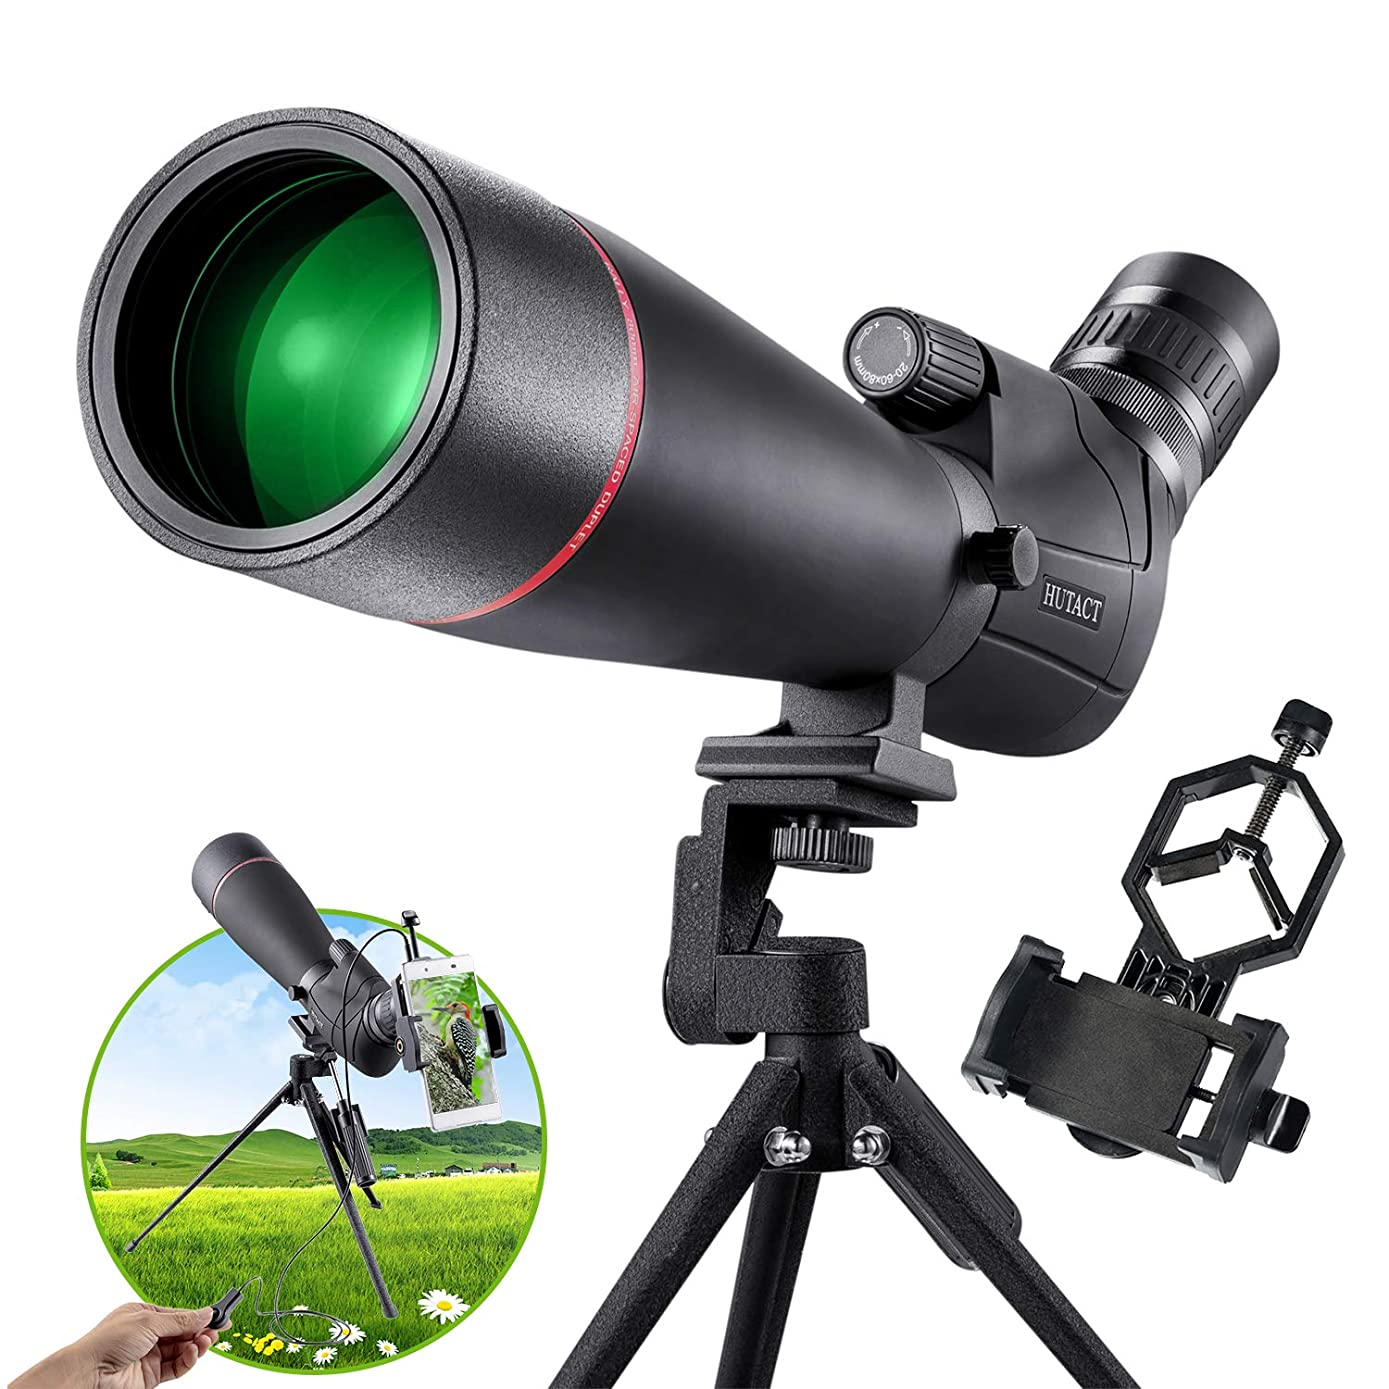 HUTACT Spotting Scope 20-60x80 AE Zoom, Waterproof PORRO Prism, 45° Tilt Eyepiece for Bird Watching and Target Shooting, with Cell Phone Mount Adapter, Tripod and Shutter Wire Control